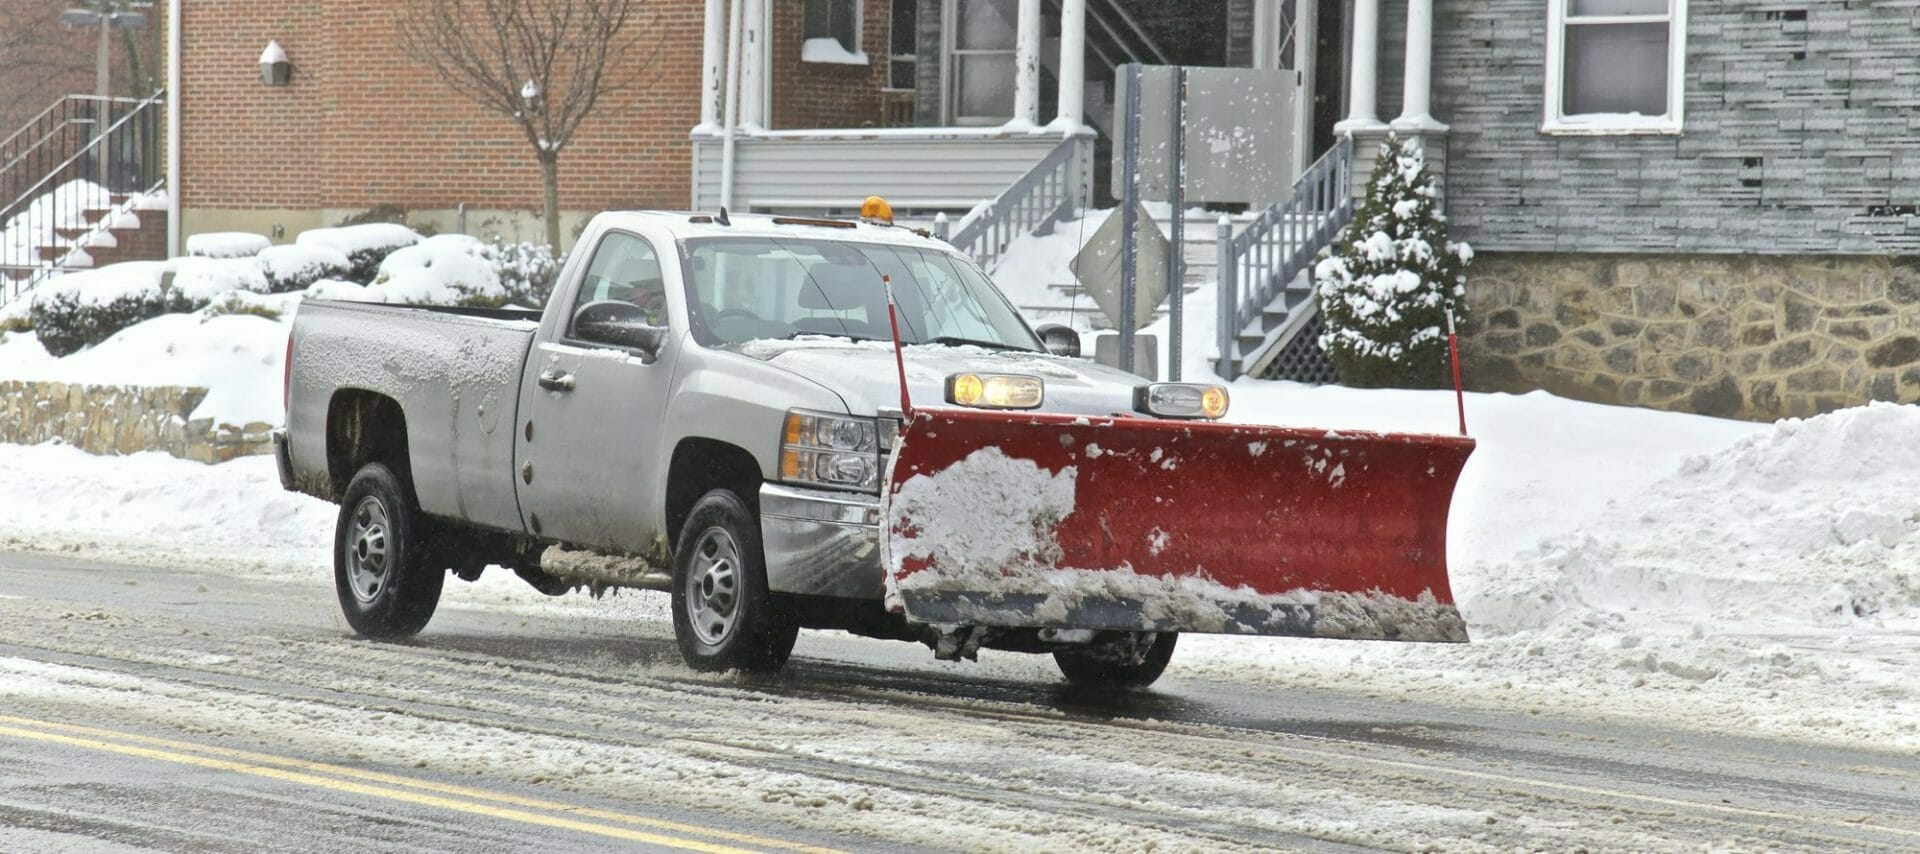 Truck with plow, Cleaning an icy road